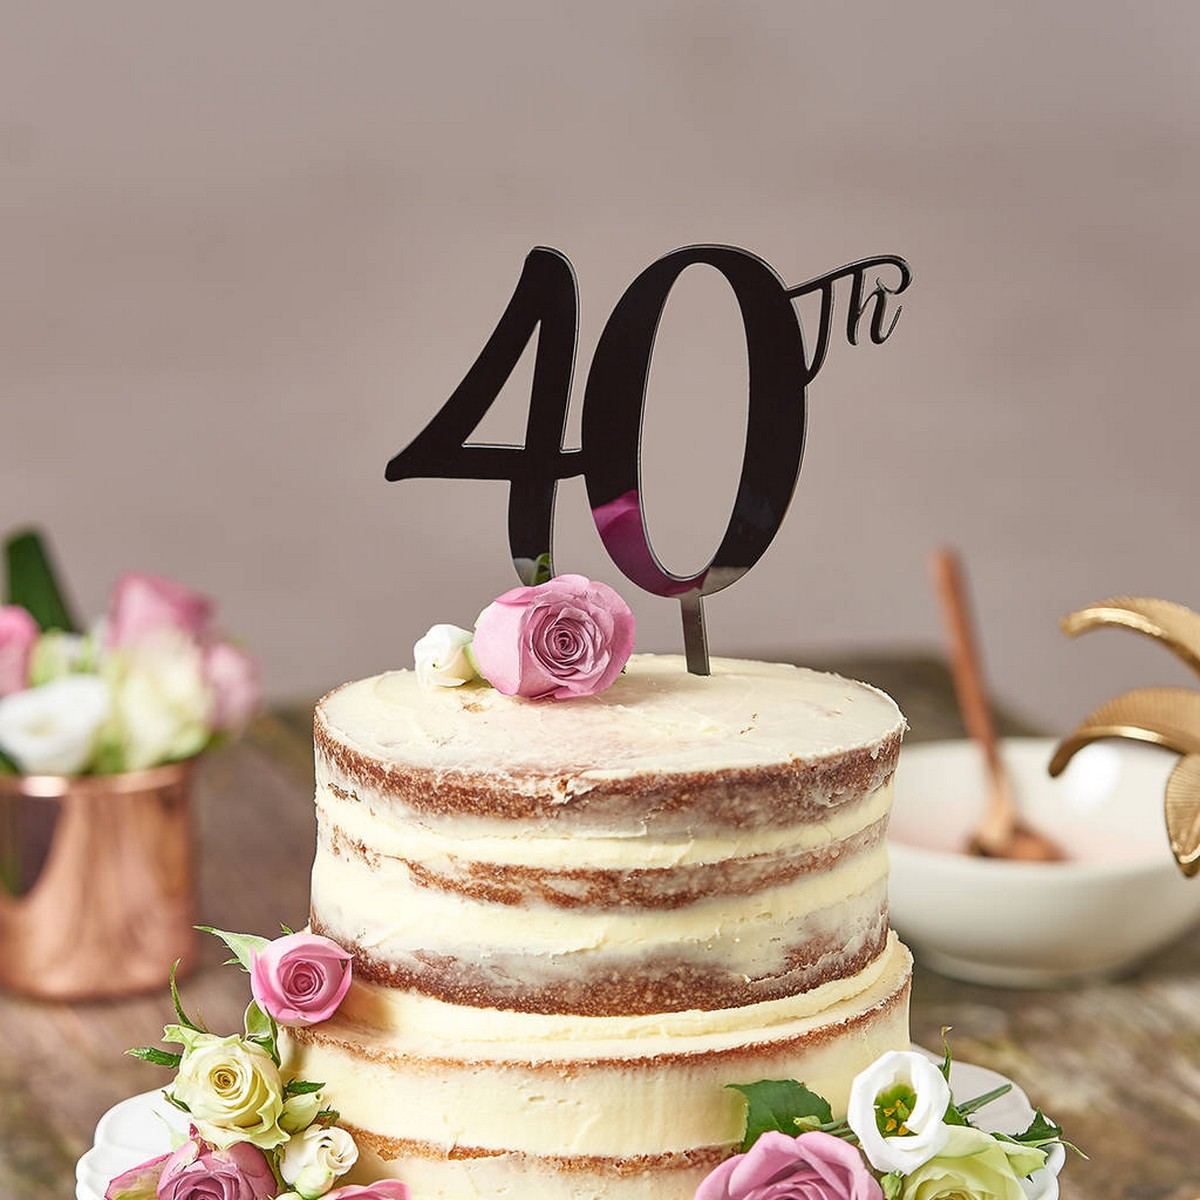 40th Birthday Cake Topper These Arent Your Parents Figurines The Wedding Toppers Of Today Are